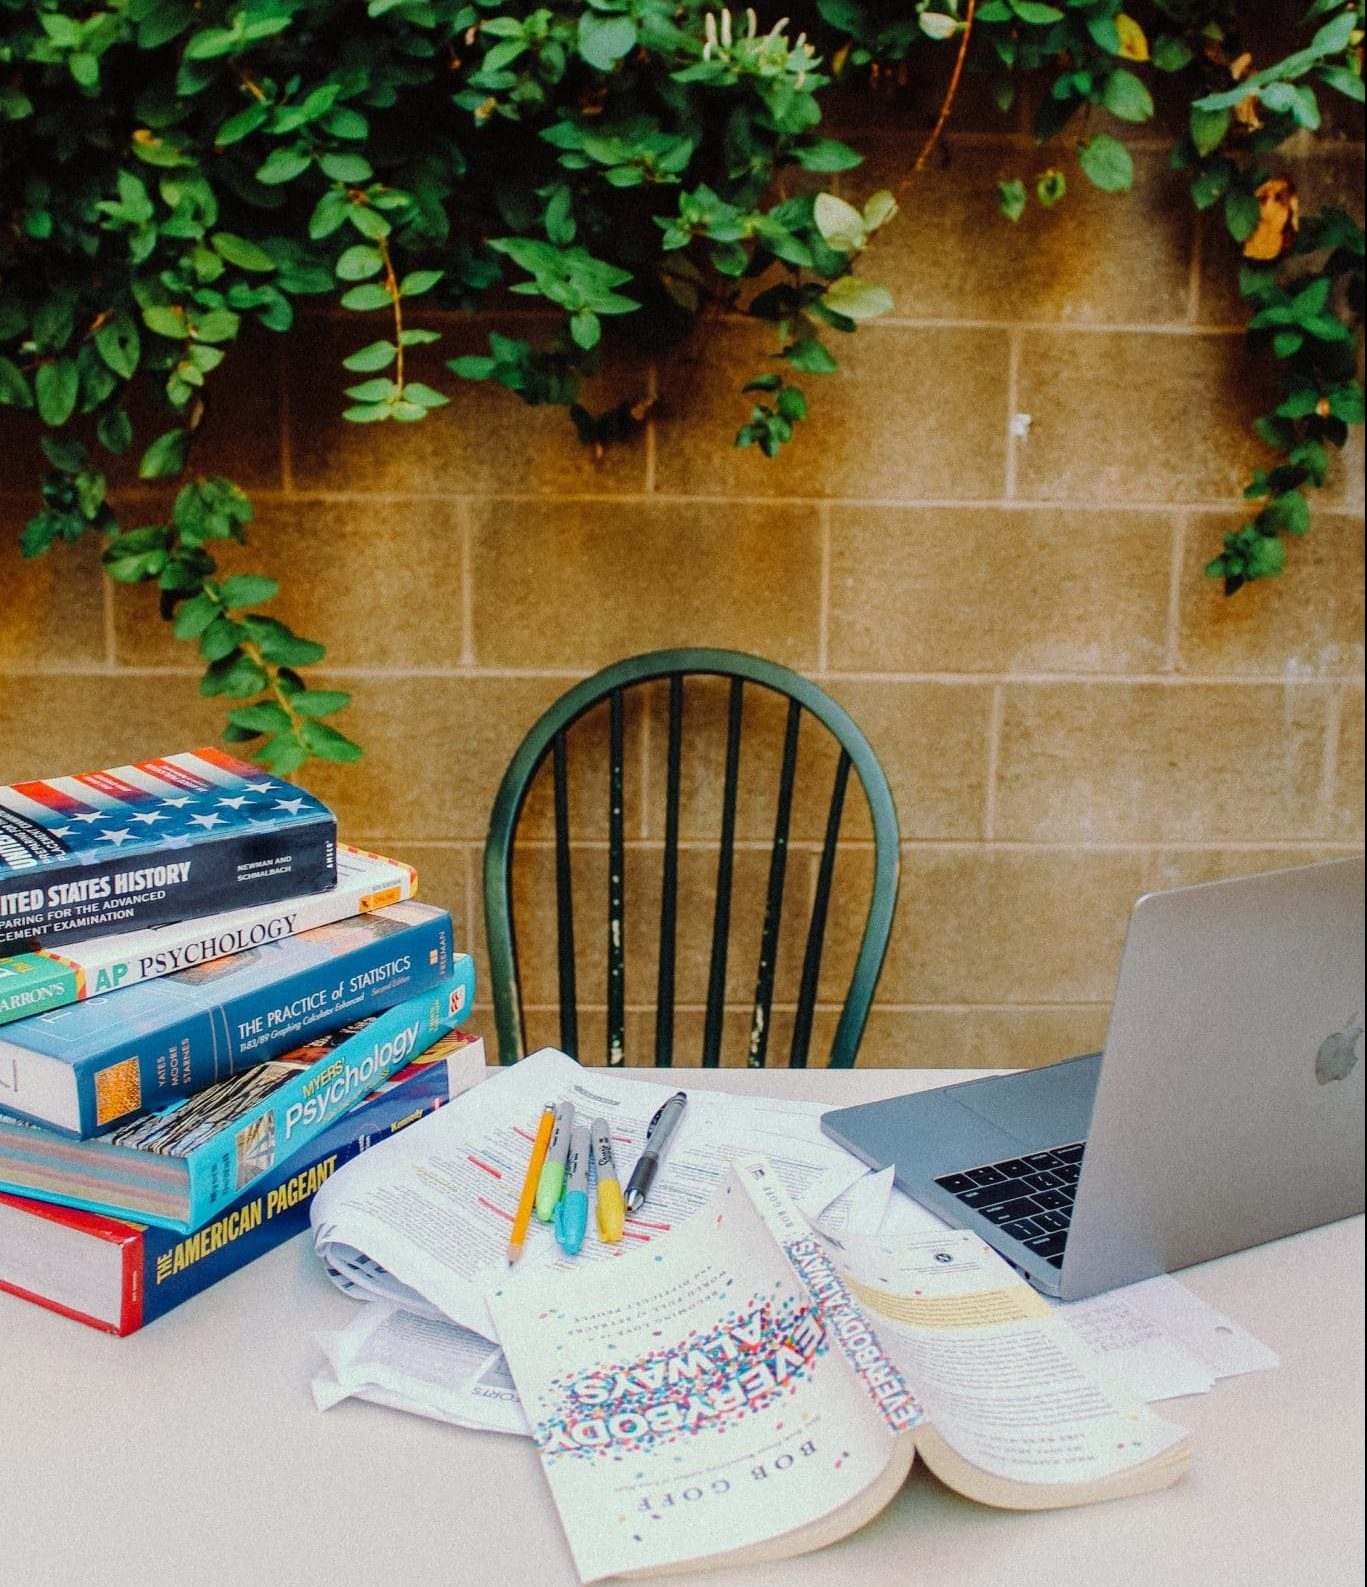 study tips - desk with textbooks, notes, and a laptop